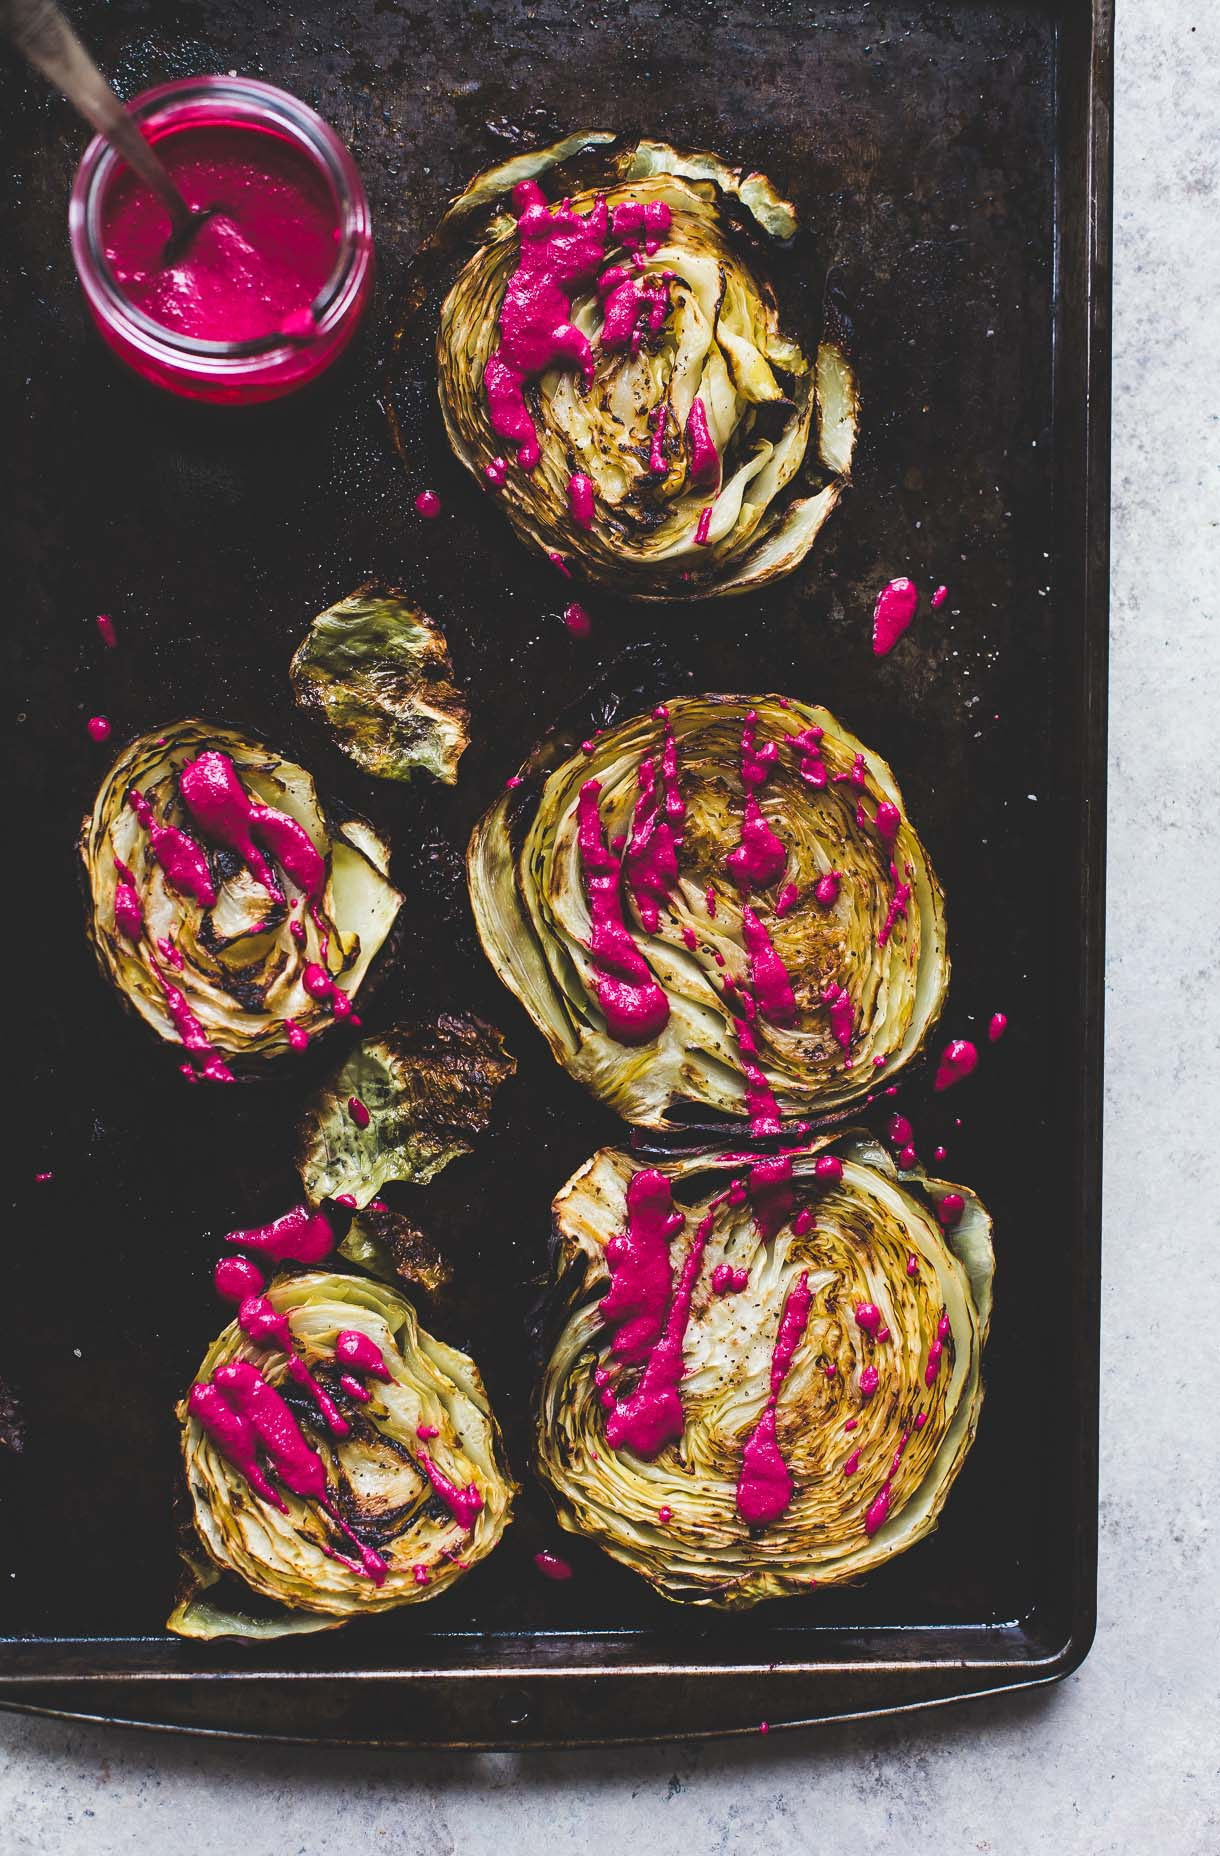 Easy Side Dishes | Roasted Cabbage Steaks With Garlicky Beet Sauce